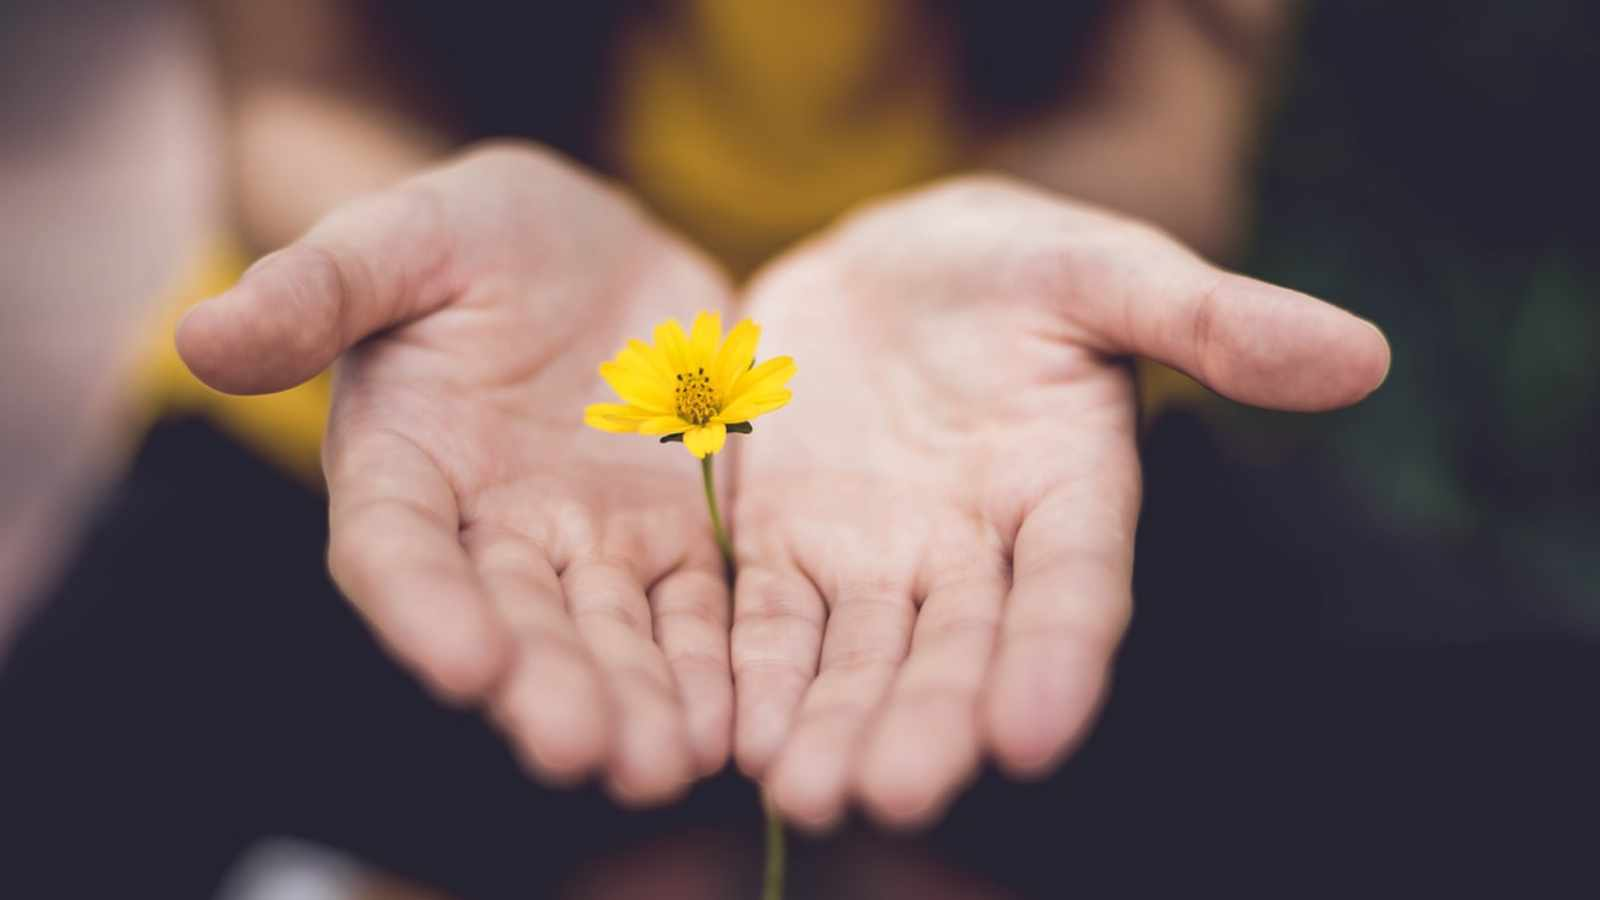 COVID19: Now is as good time as ever to add altruism to your budget. Here's how: